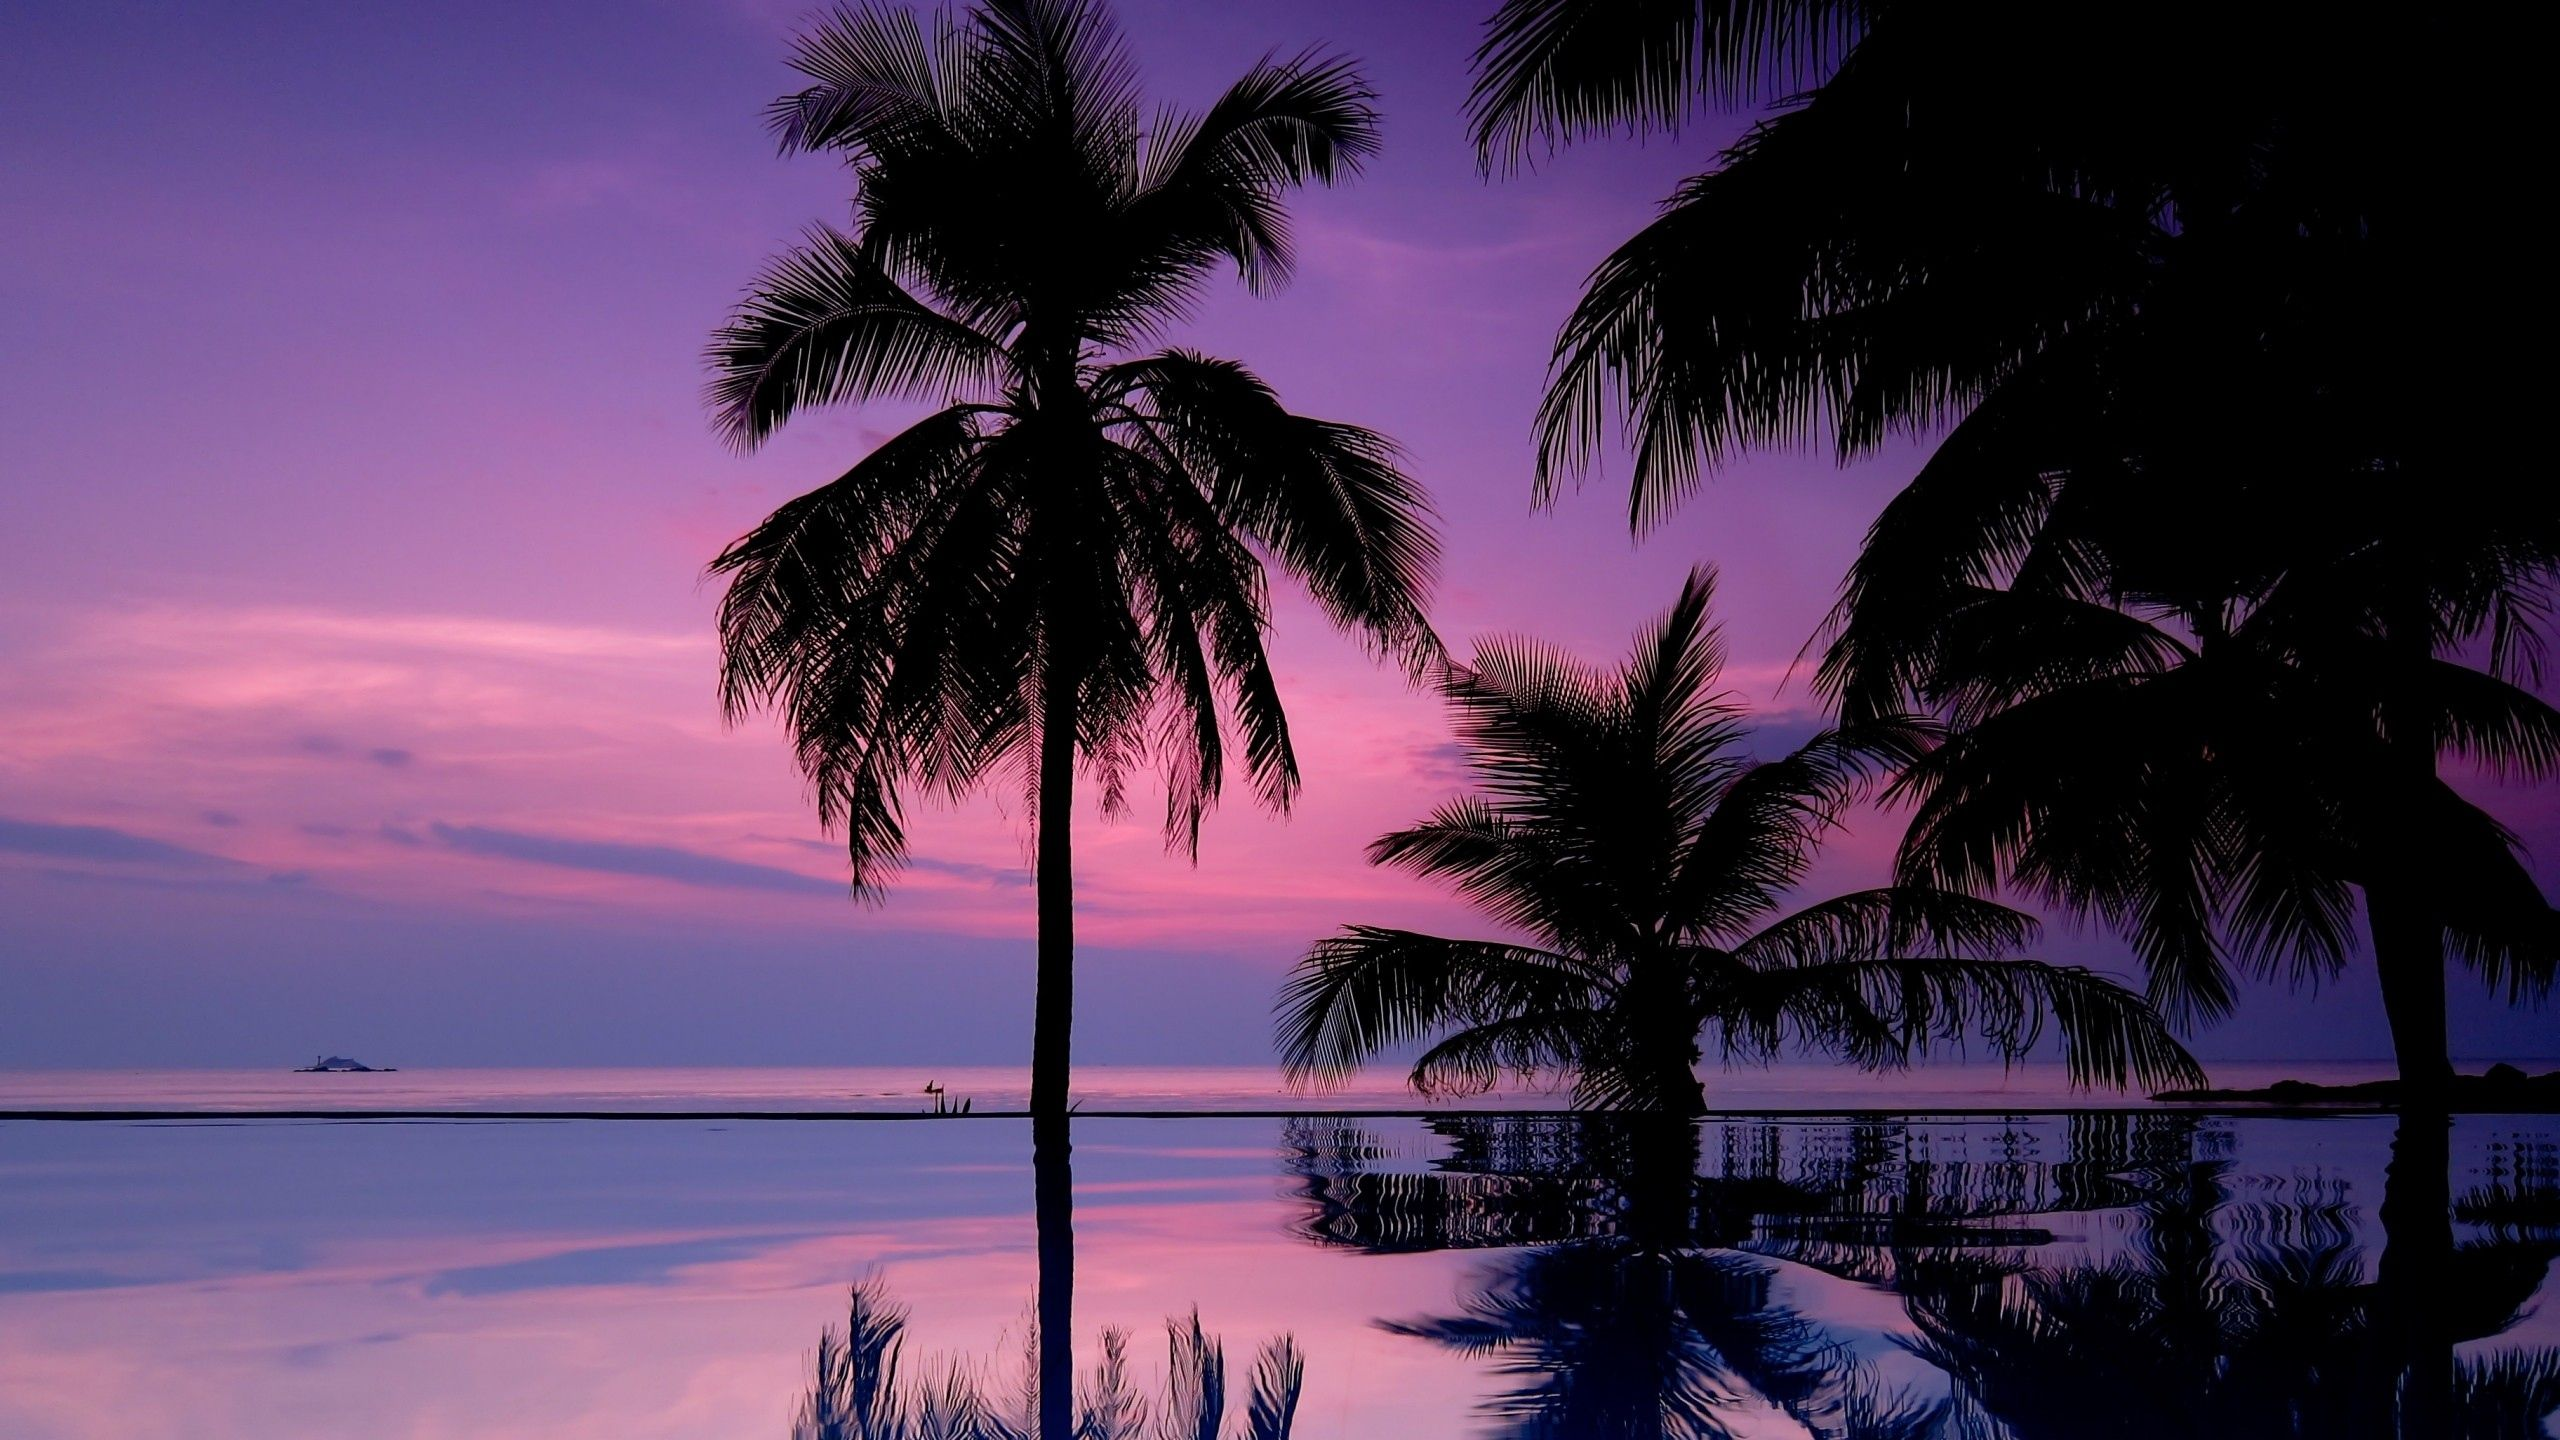 palm-trees-backgrounds